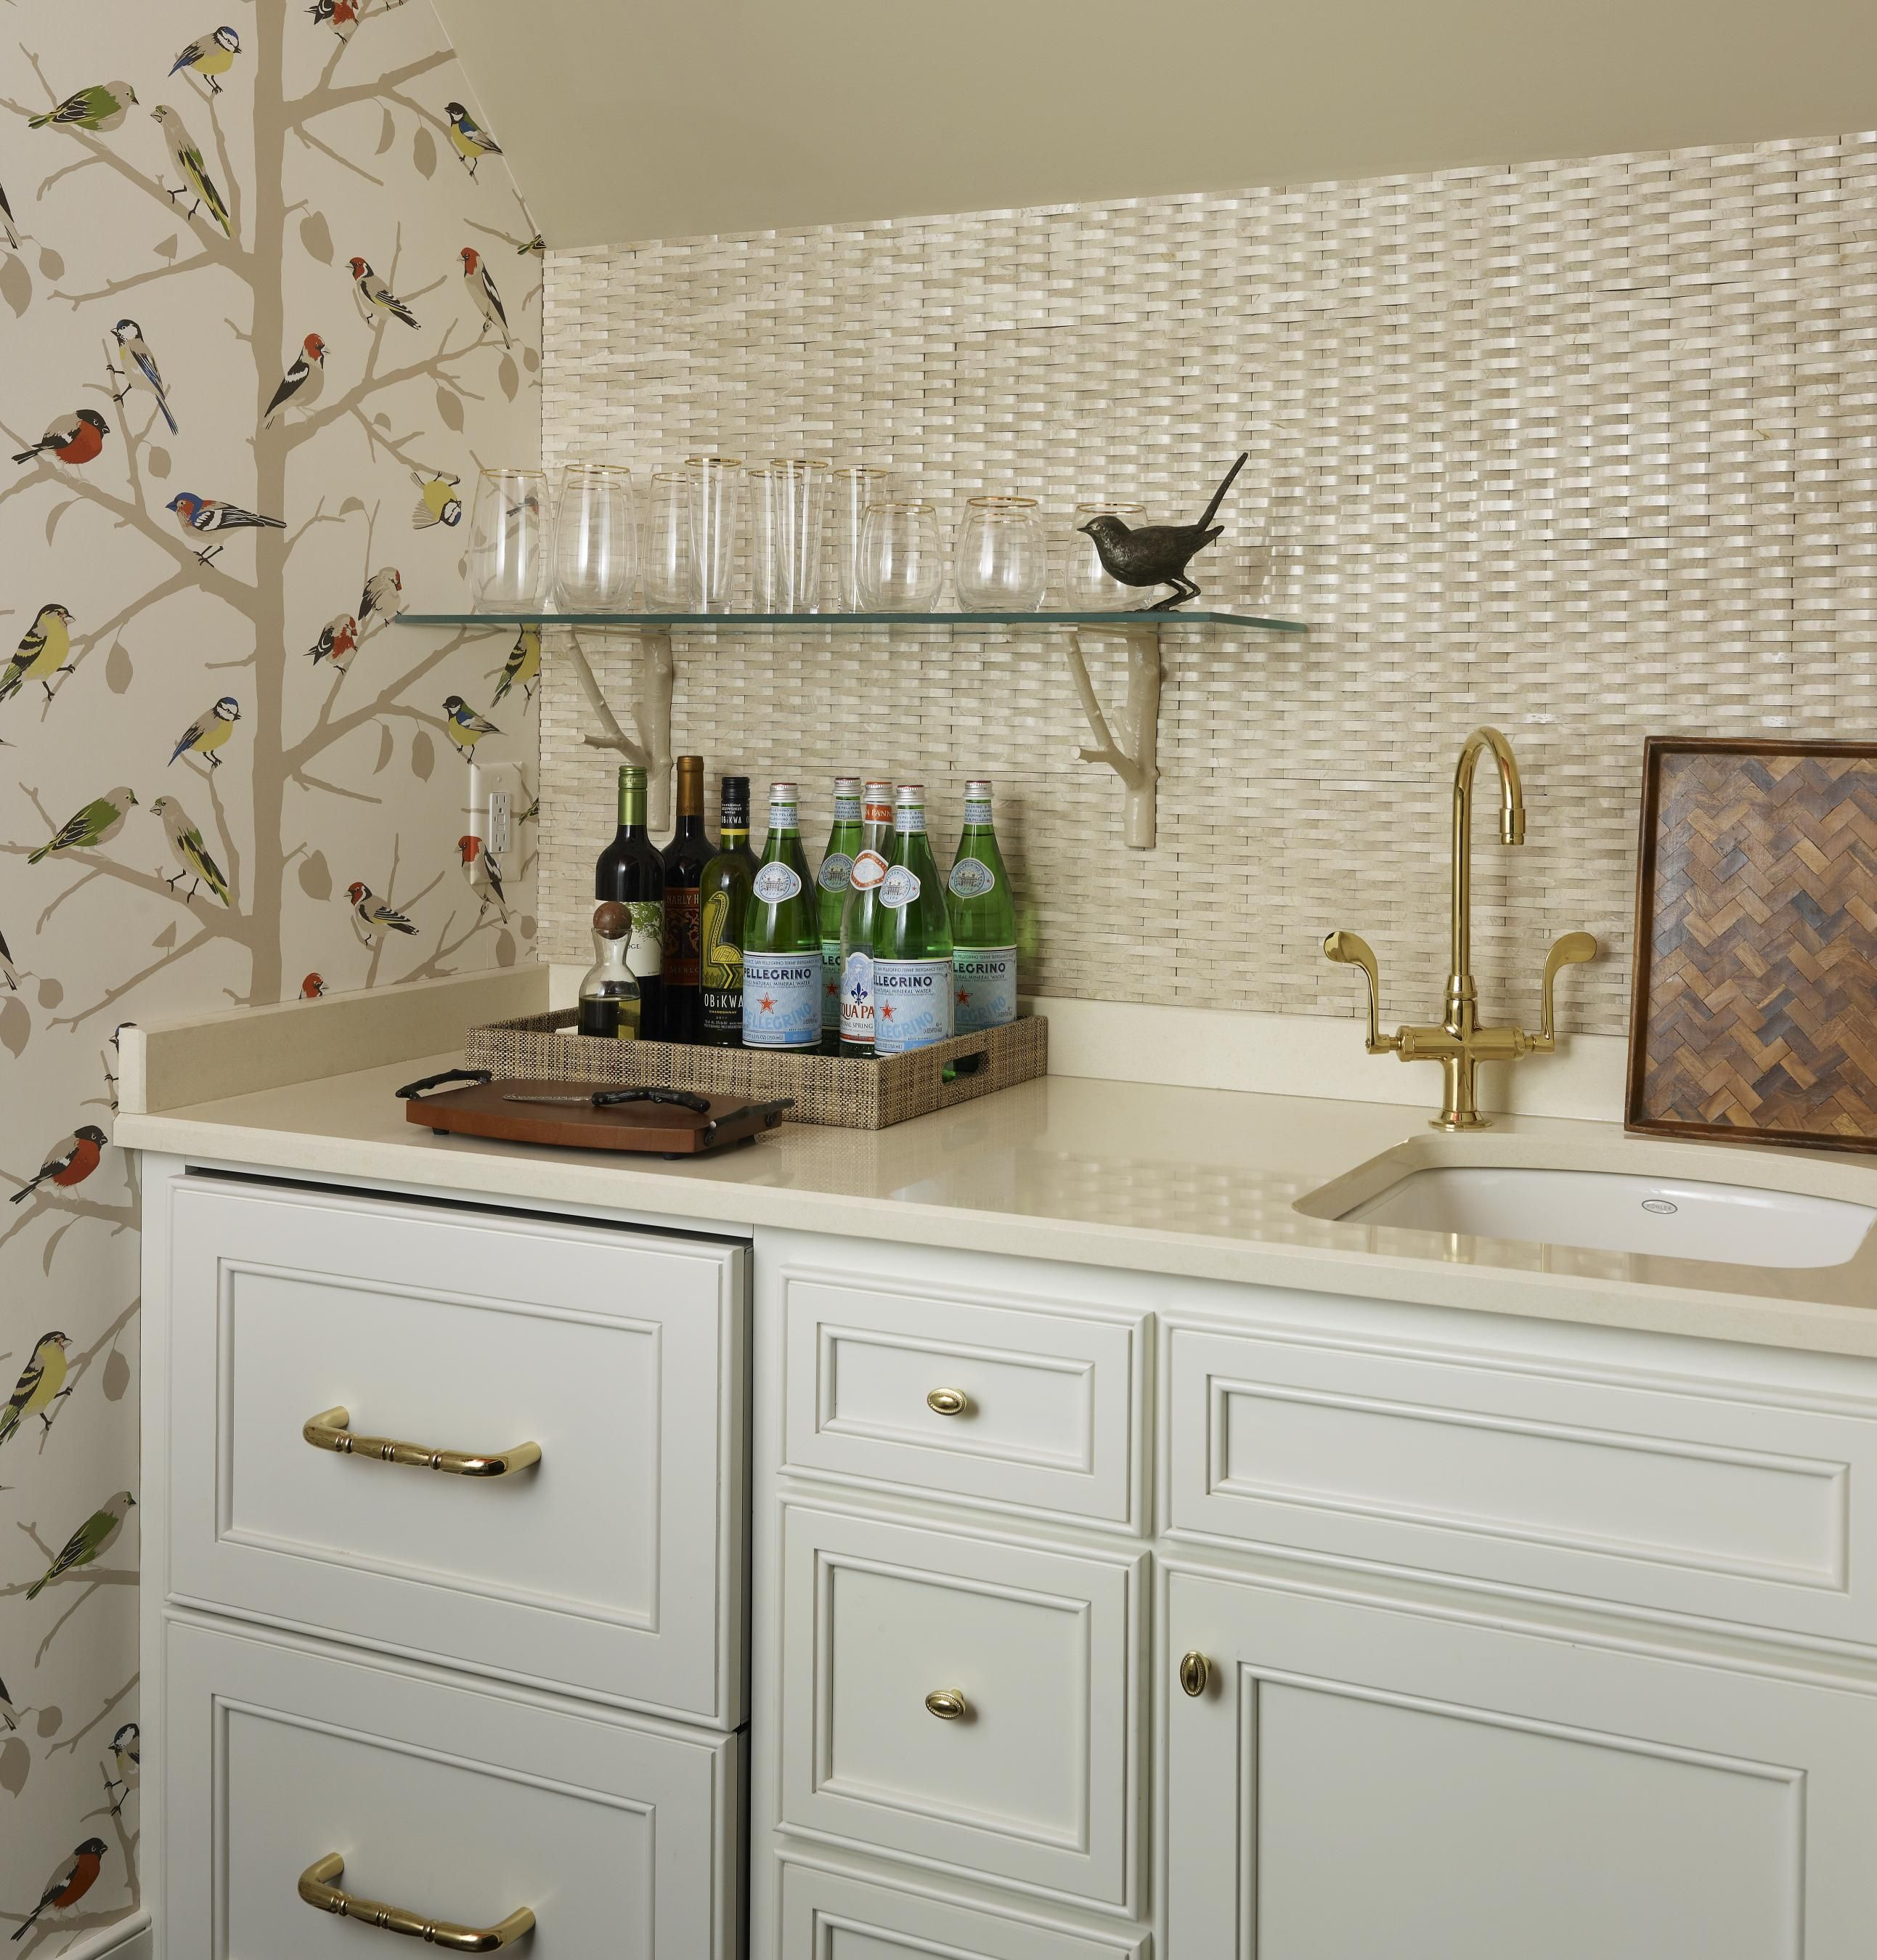 Wallpaper Magazine Kitchen Design 3 D Backsplash Behind Vanity Love Cream And White Color